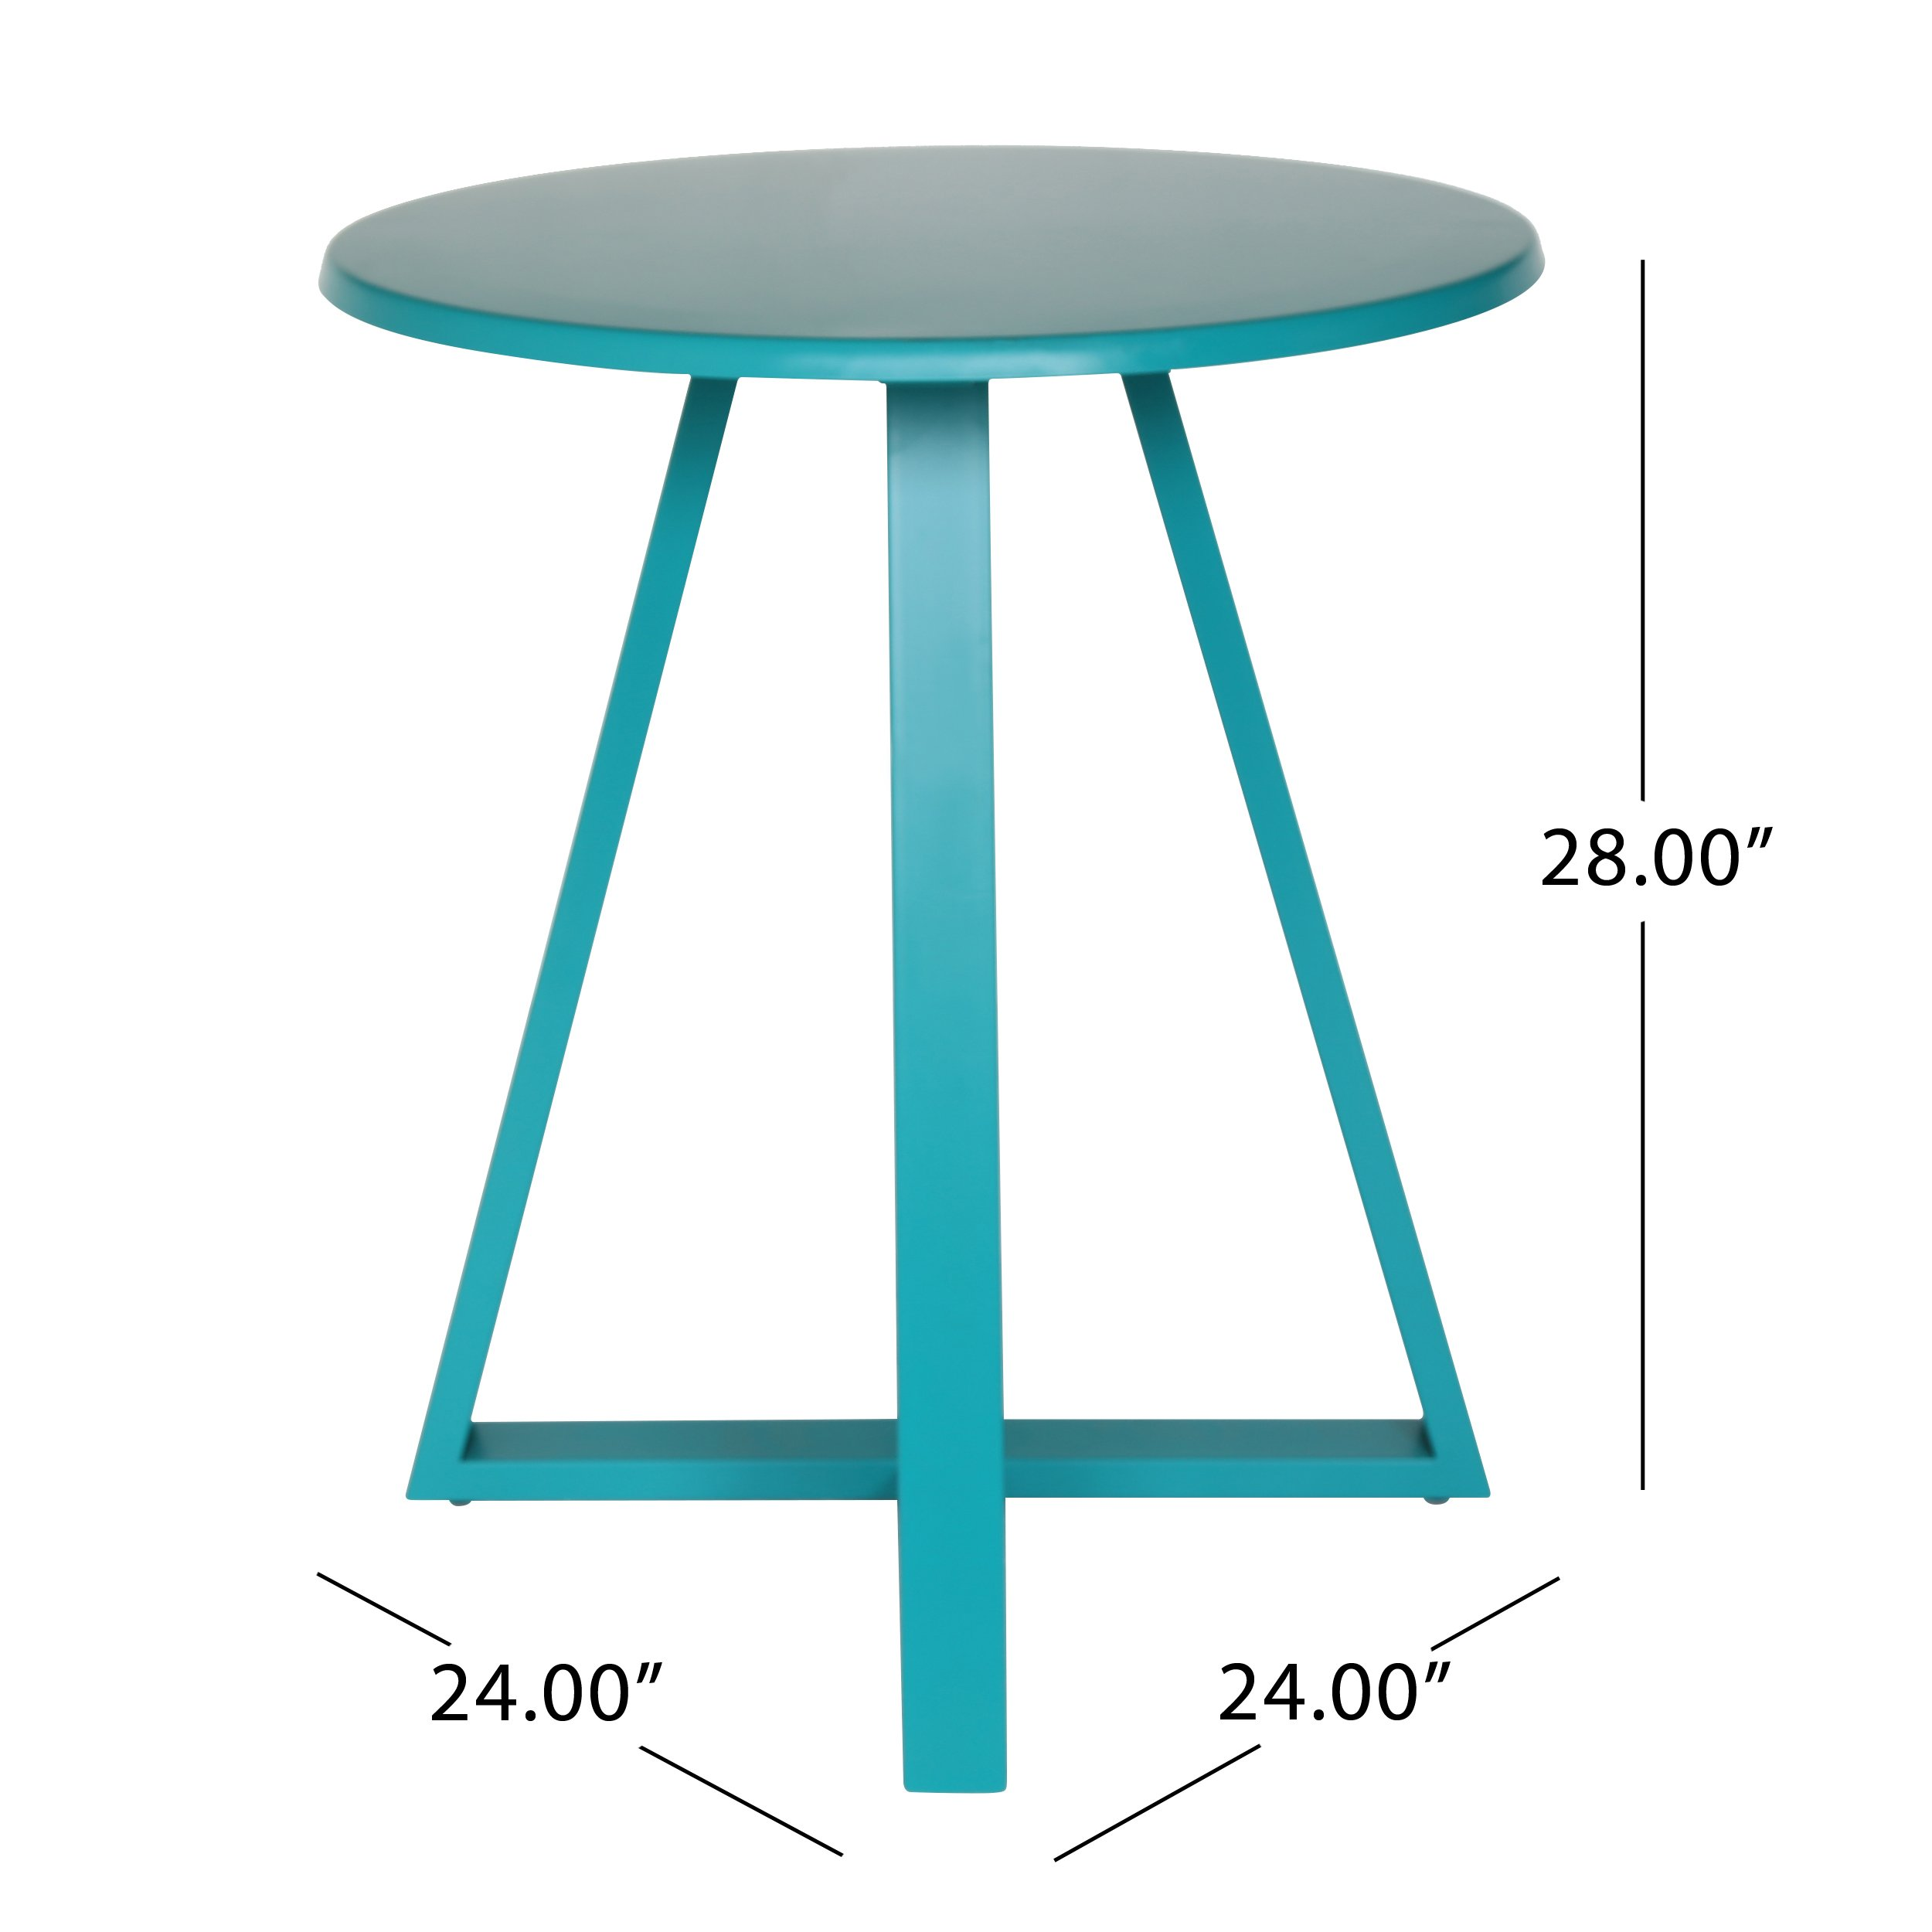 Great Deal Furniture Kate Outdoor Iron Bistro Set, Matte Teal by Great Deal Furniture (Image #8)